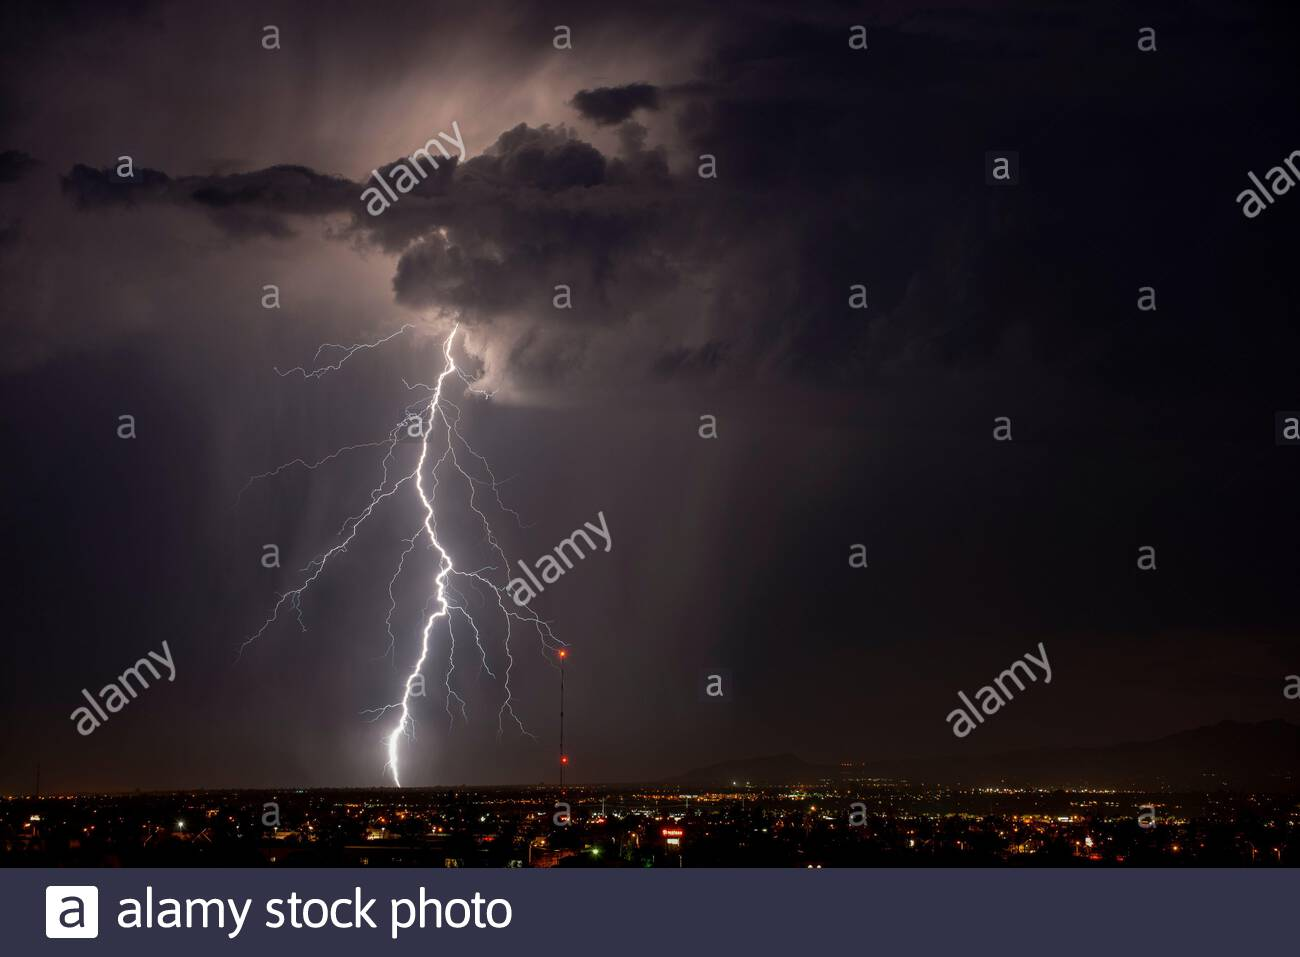 One huge lightning bolt crashes down in North Tucson, Arizona during a summer monsoon thunderstorm Stock Photo